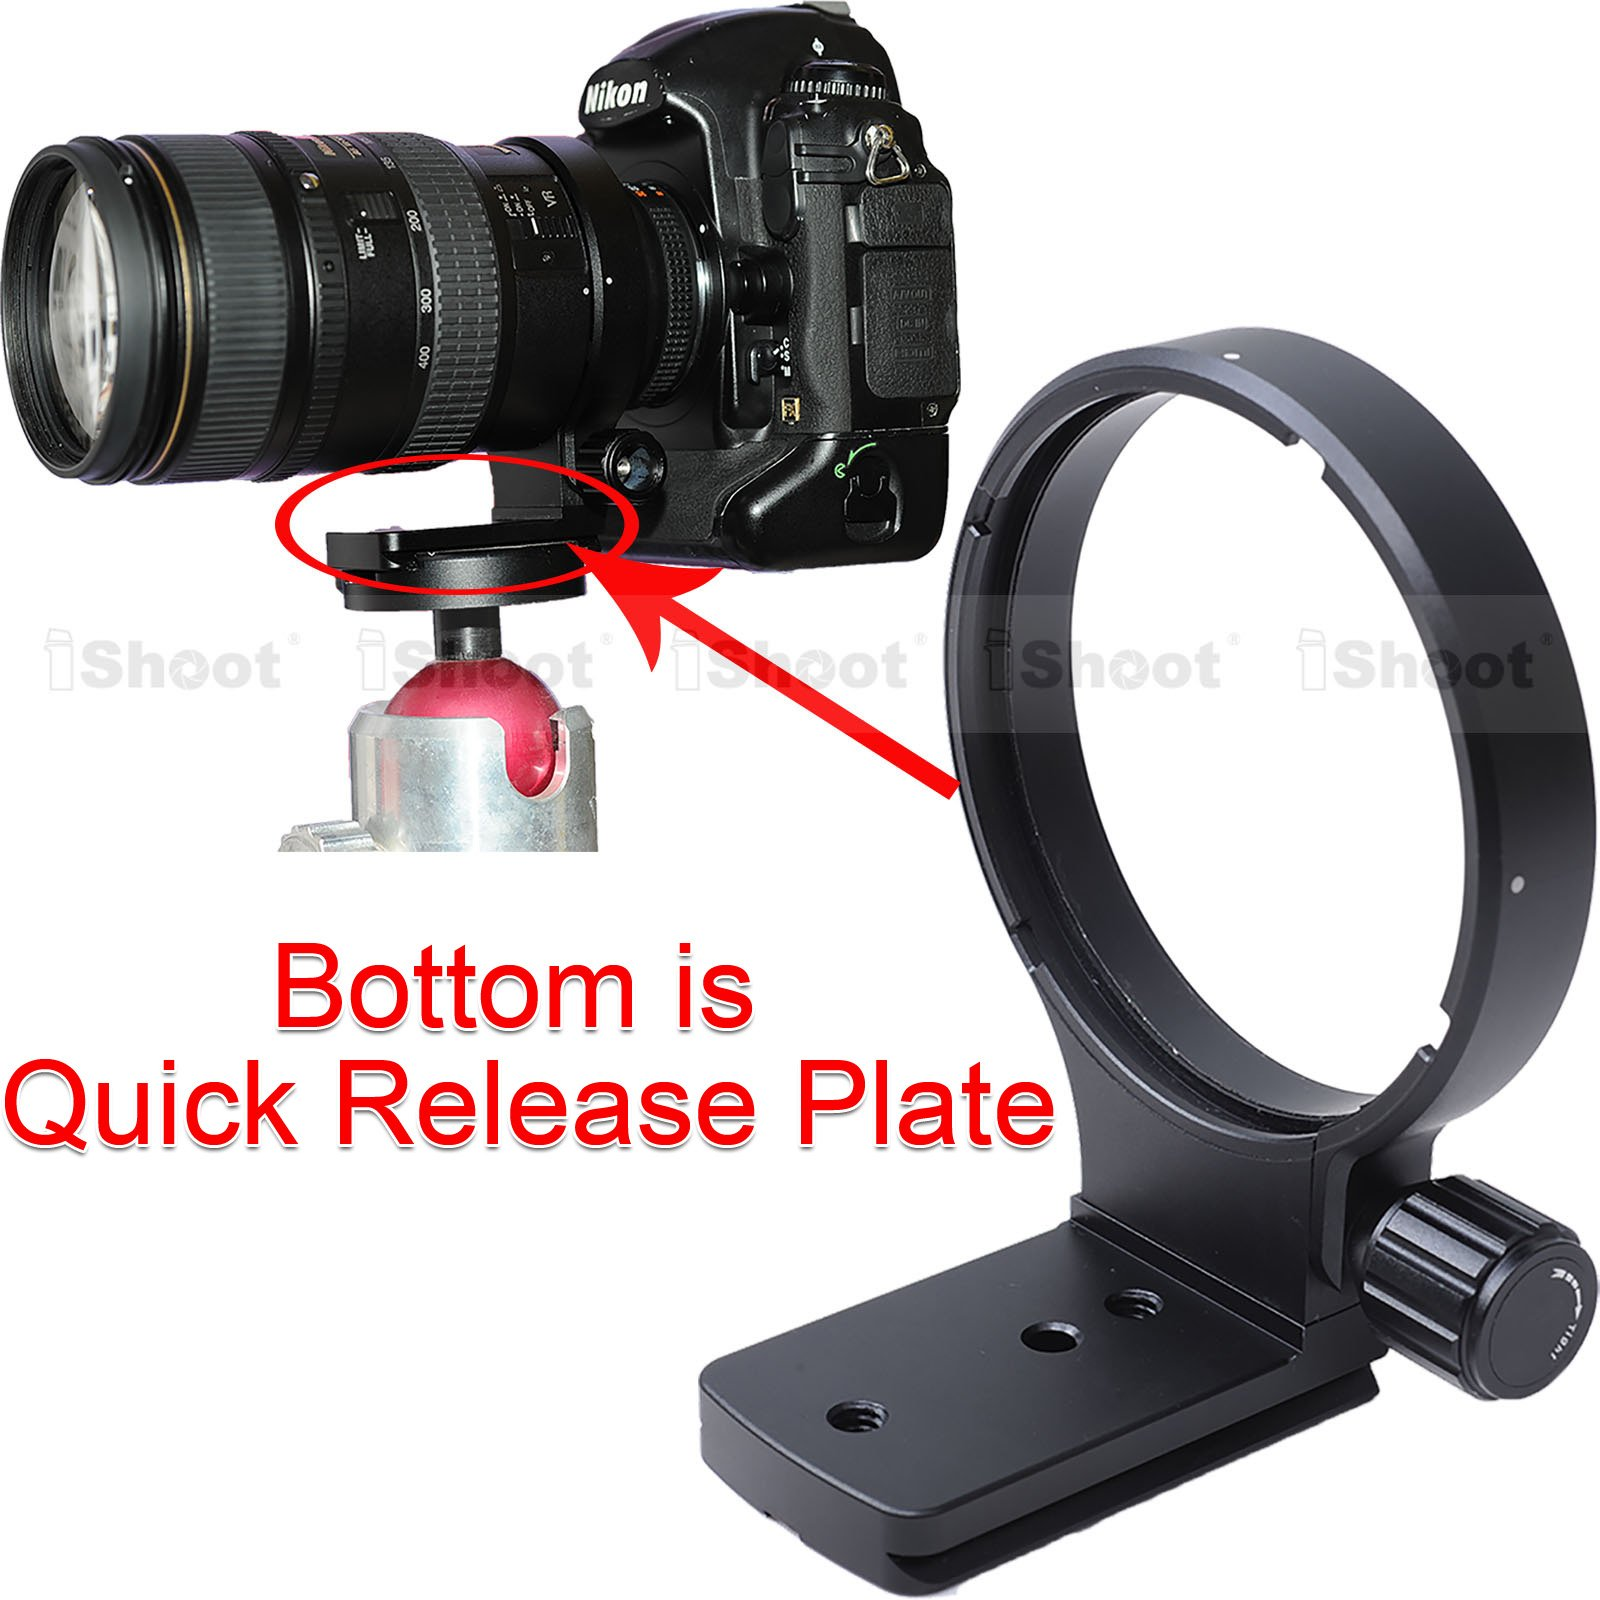 CNC Precisely Machined Lens Support Collar Tripod Mount Ring for Nikon AF 80-400mm f/4.5-5.6D ED VR and Nikon AF-S 300mm f/4D IF-ED -Bottom is Camera Quick Replease Plate Feature by iShoot